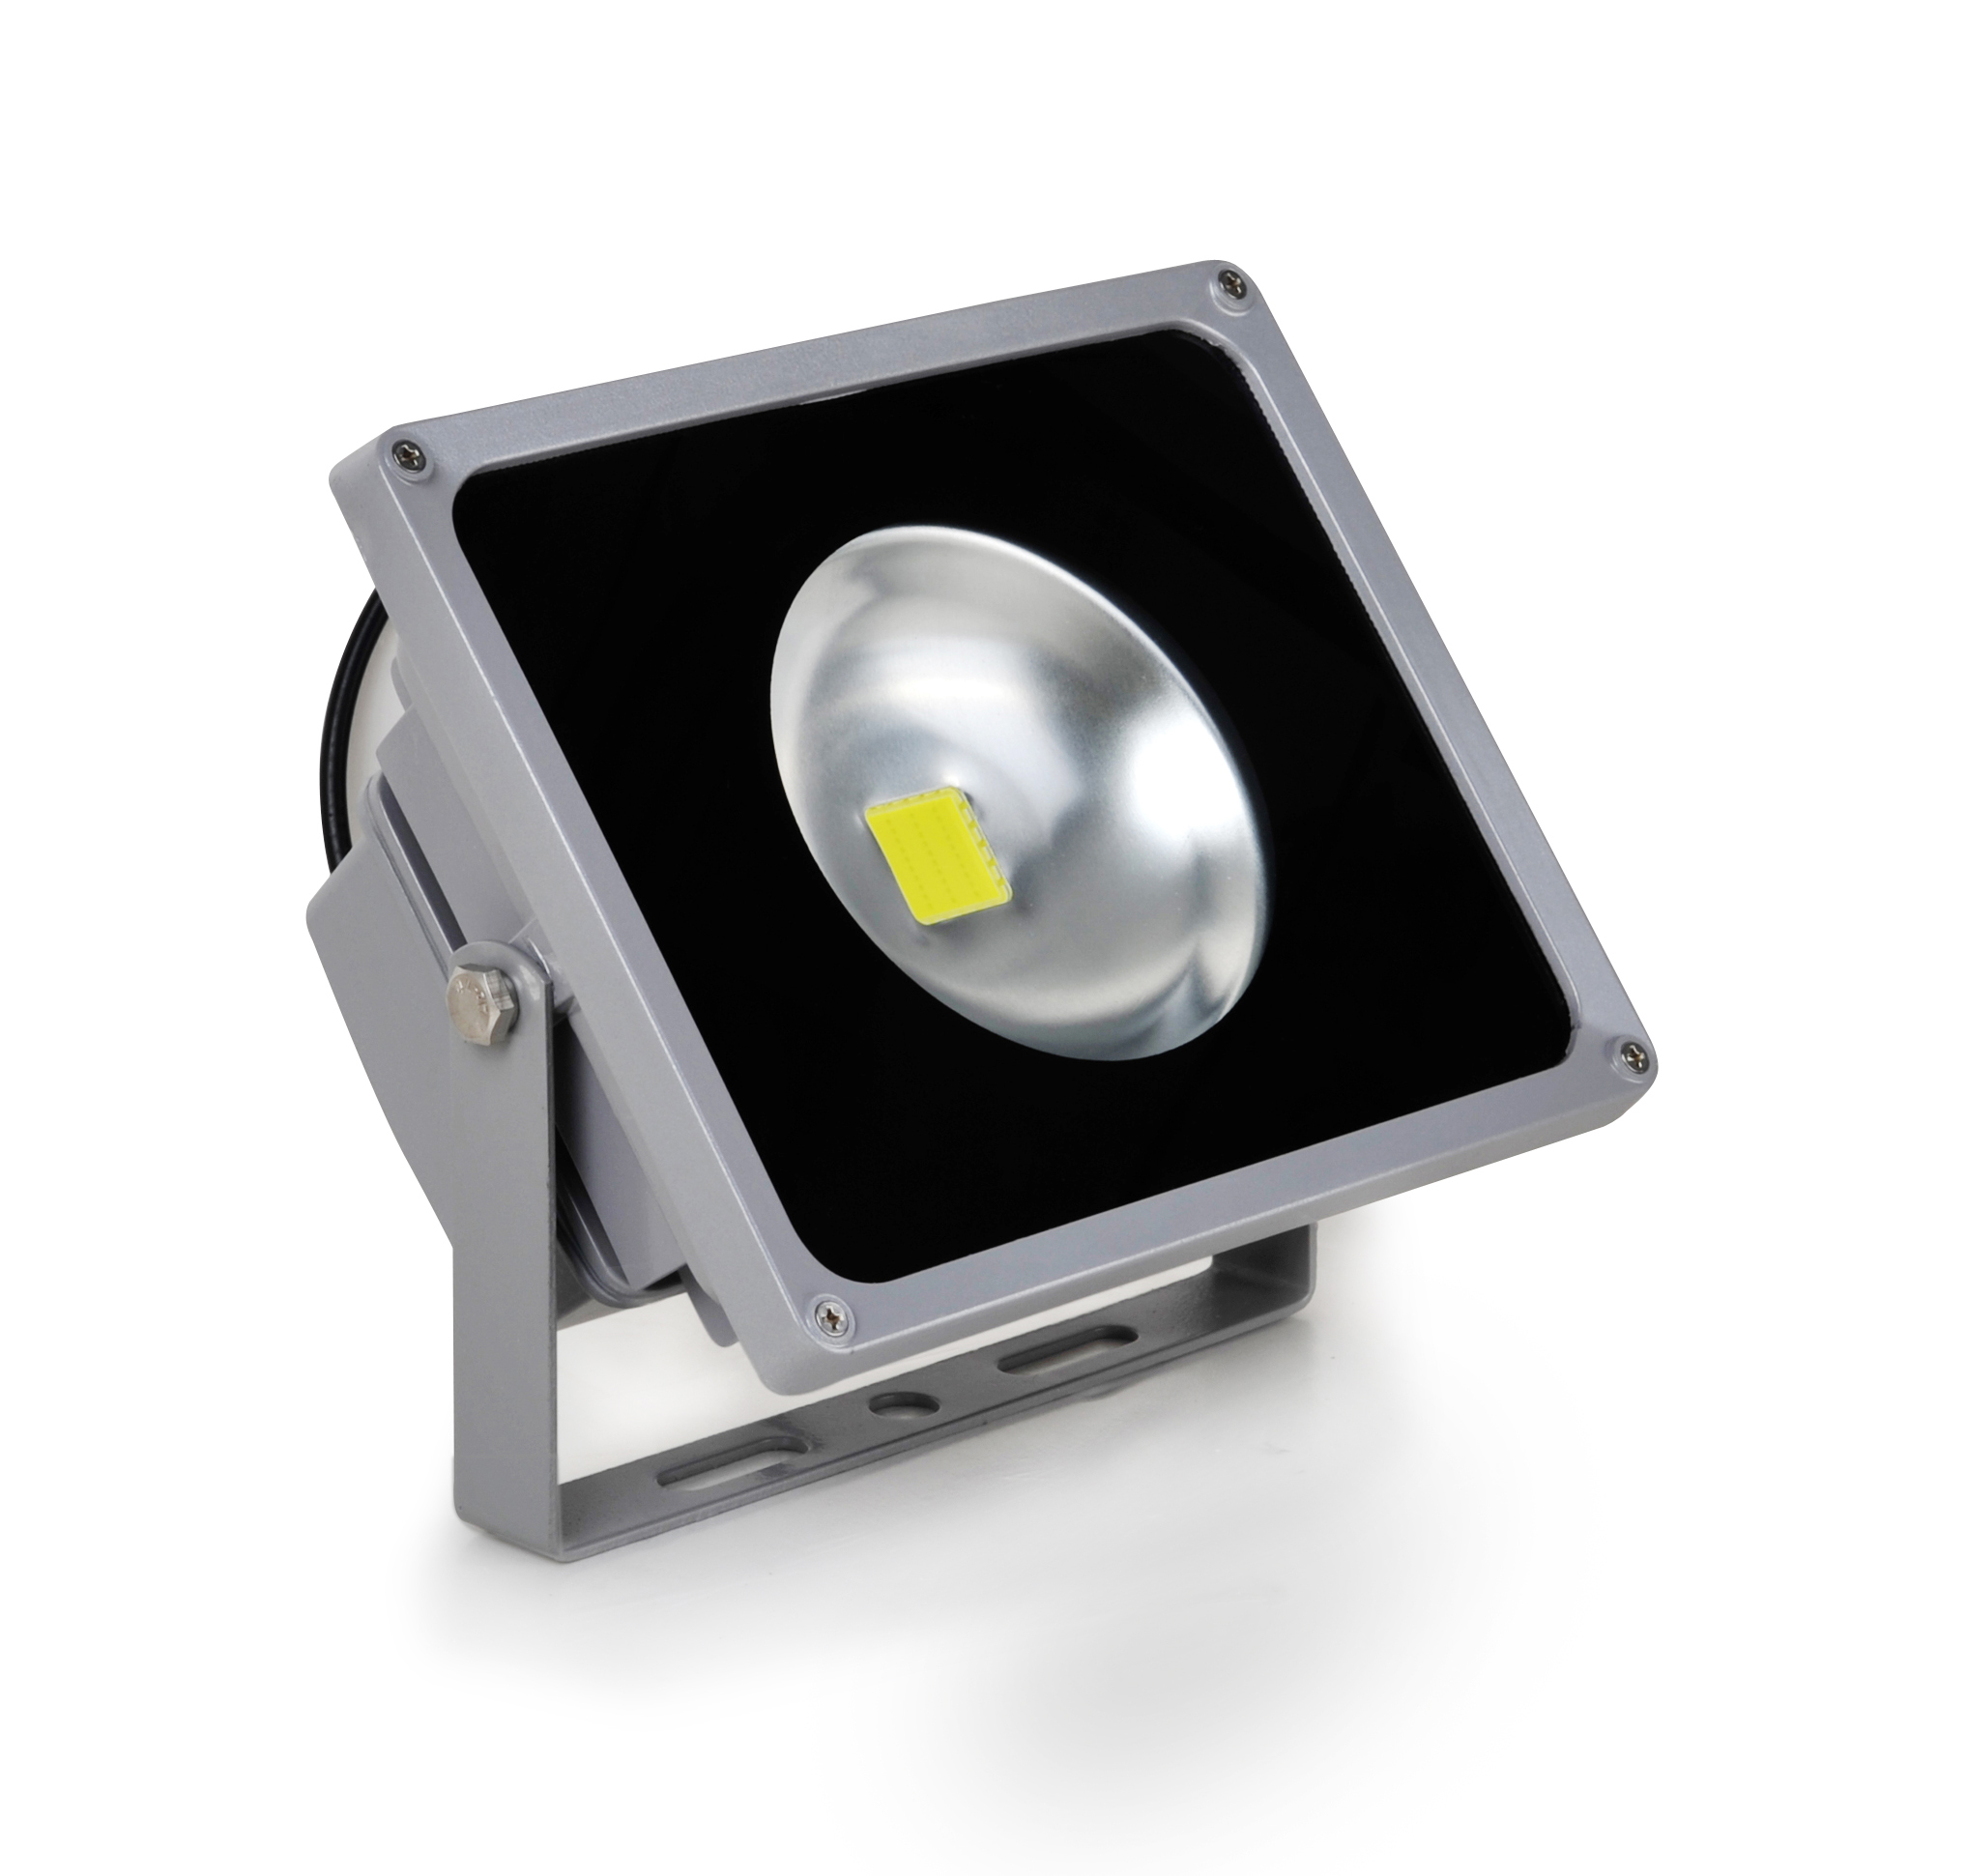 Direct Sales High Power Brightness Cob High Bay LED Flood Light LED Manufacturer